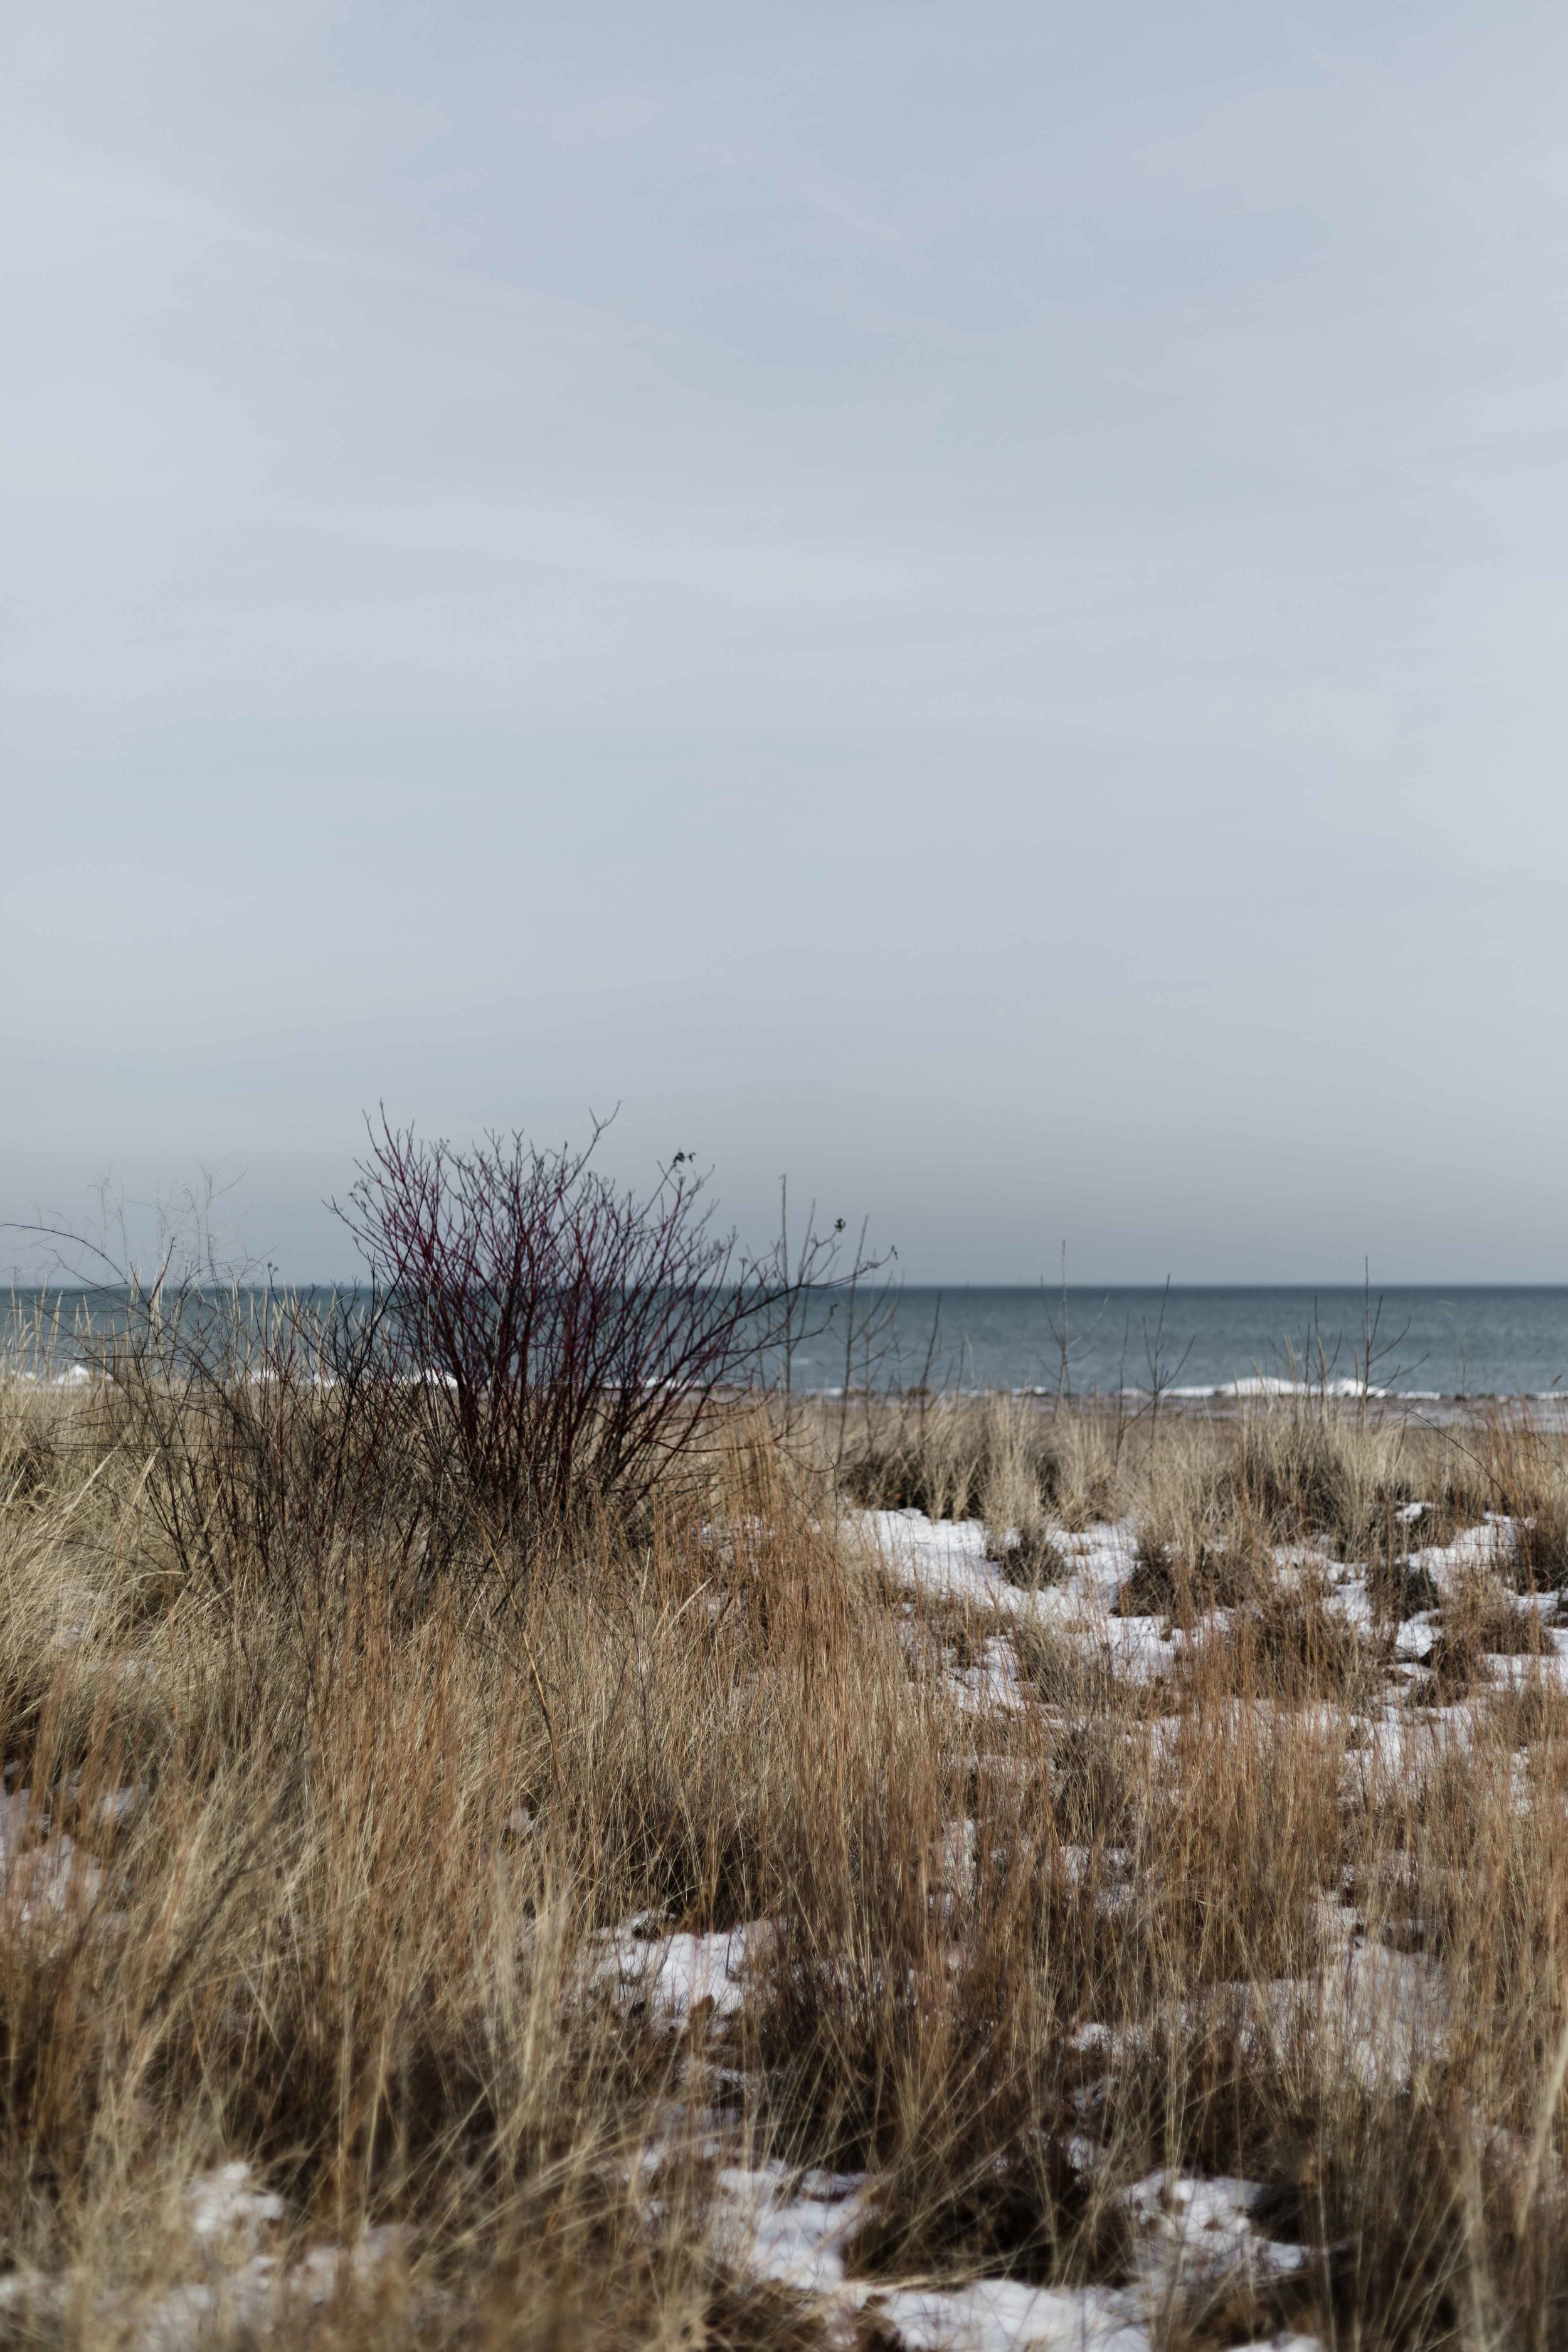 Evanston lakefront during Chicago winter